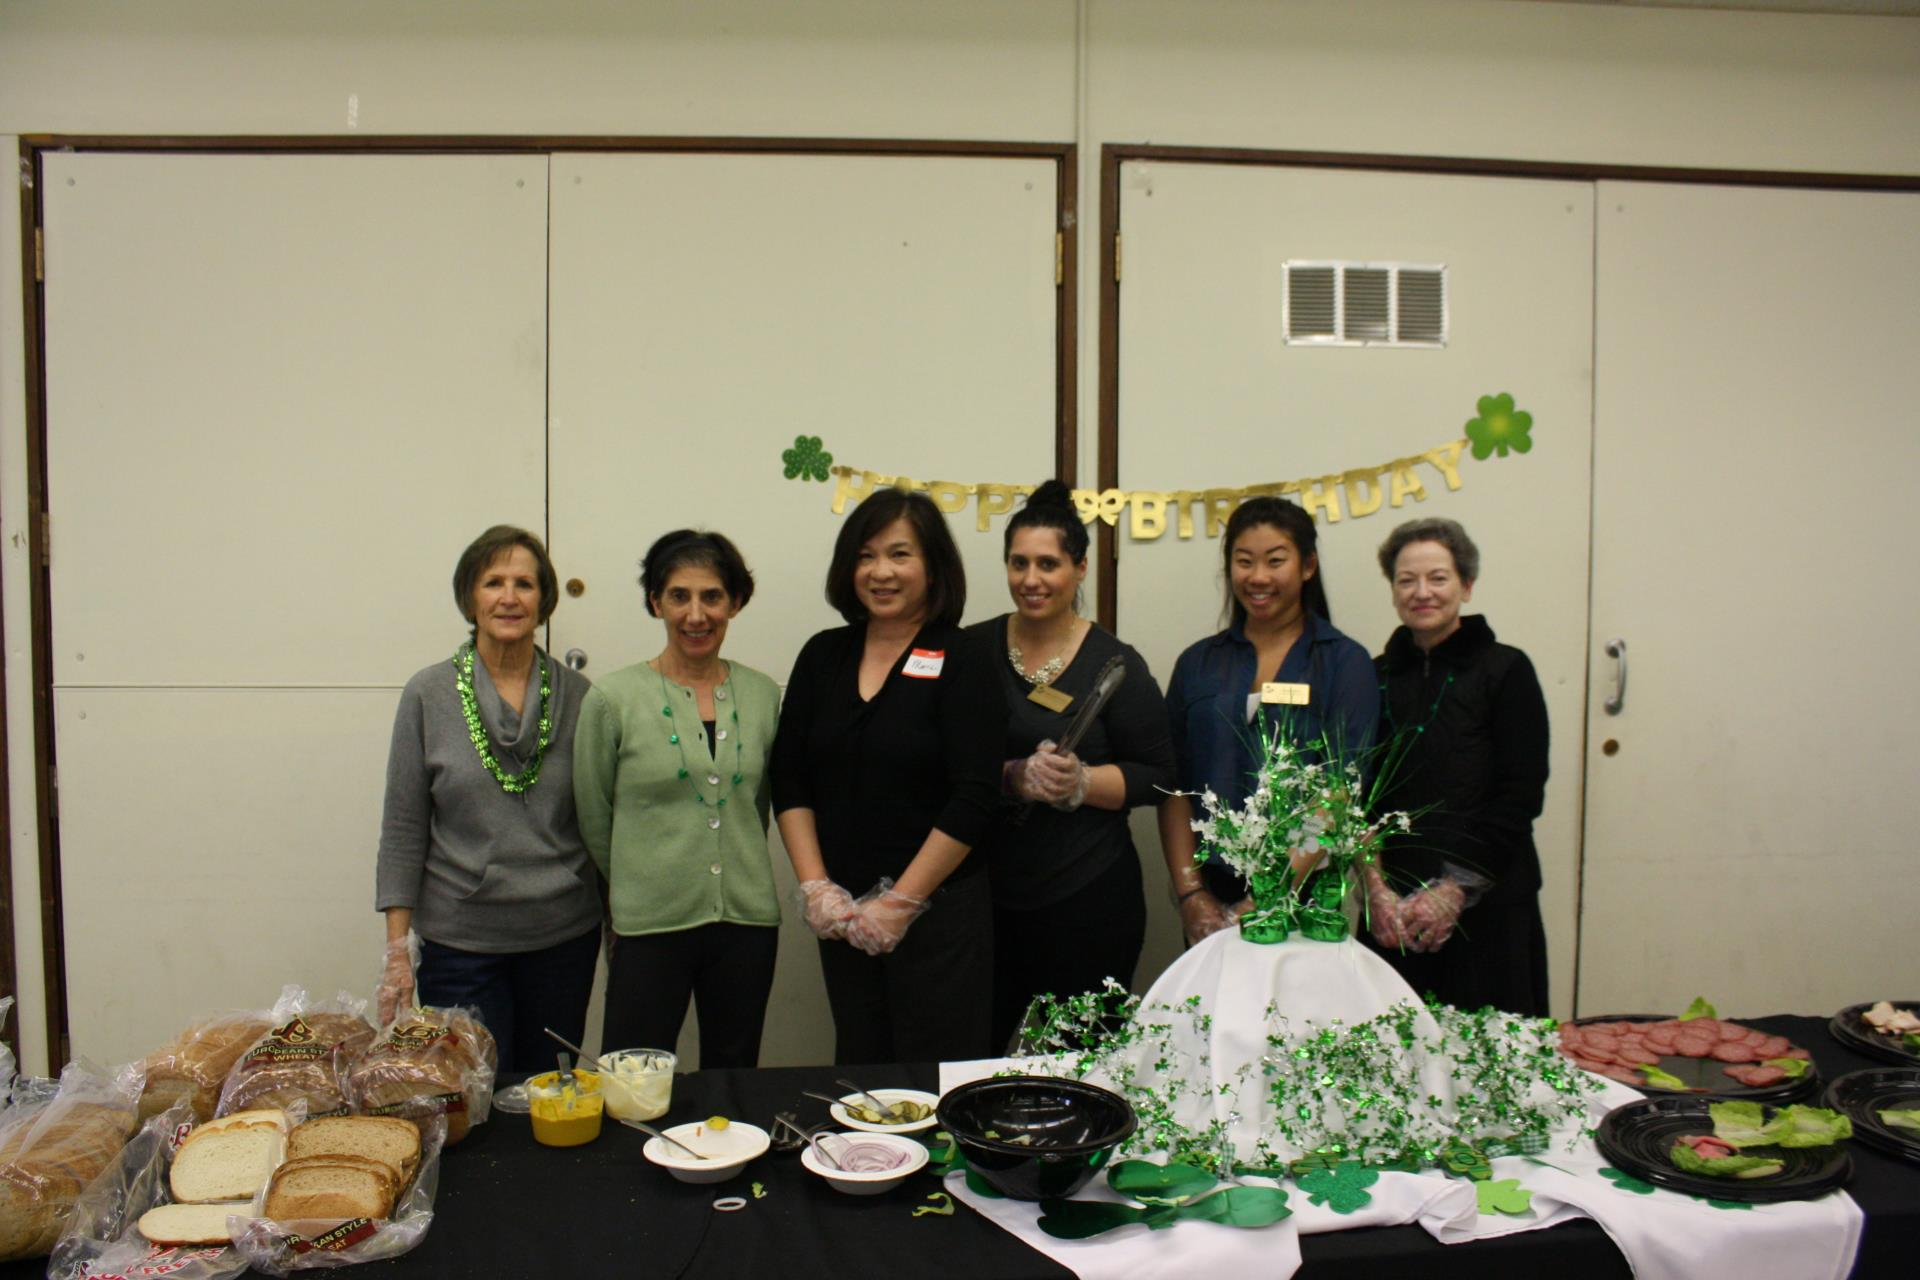 A huge THANK YOU to our volunteers who serve at monthly Senior Luncheons!